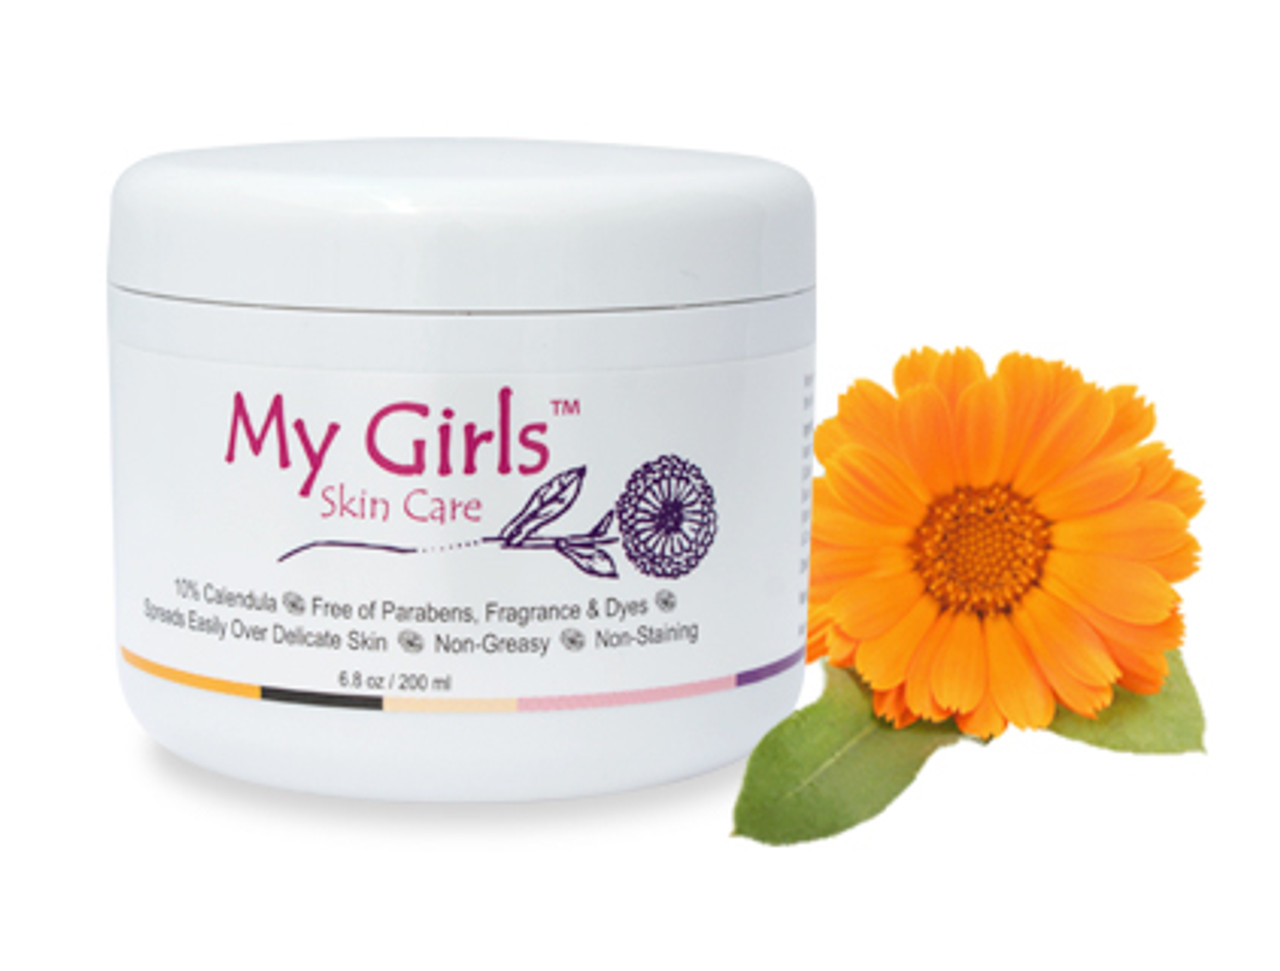 Buy 1 or More 6.8 Oz My Girls Skin Care Tubs and Get 50% Off Another Tub